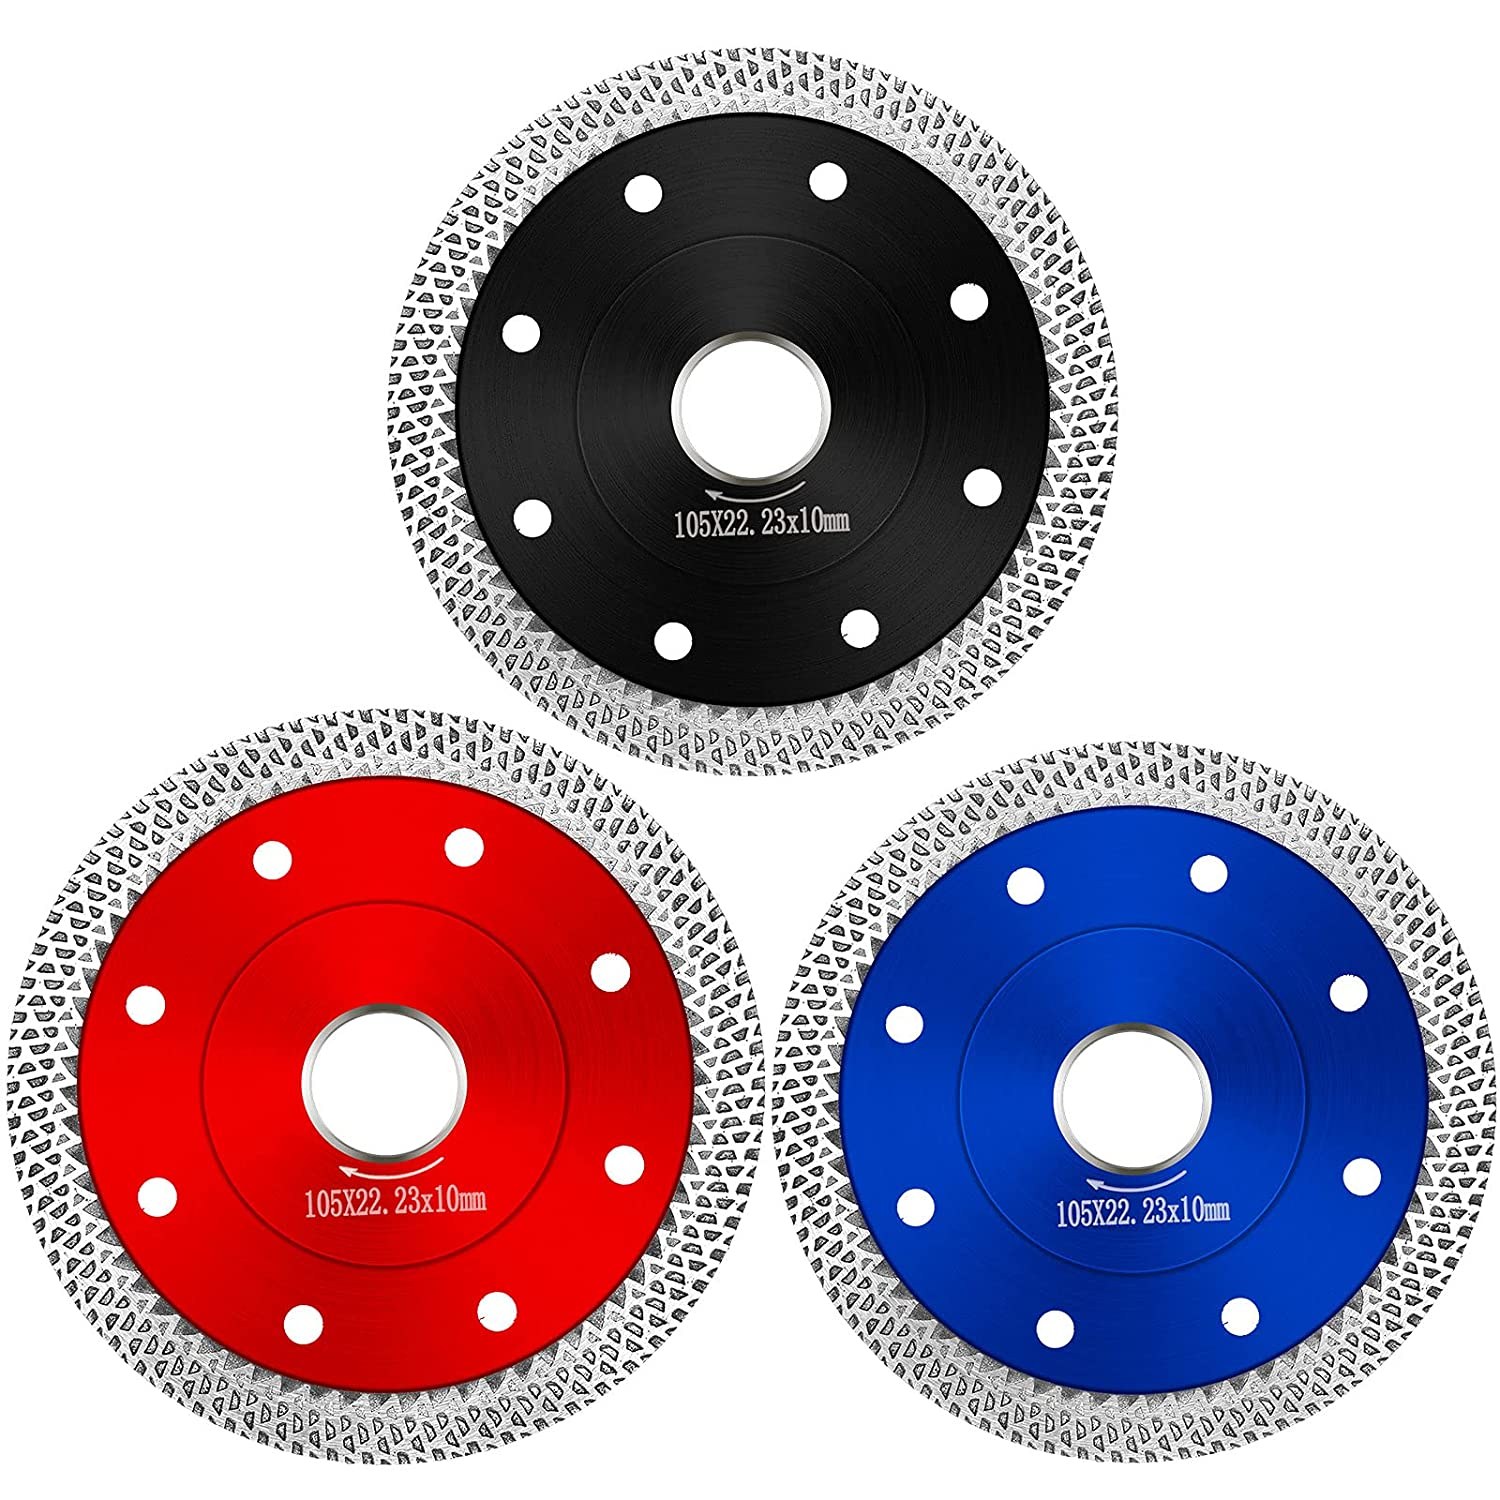 3 Pieces 5% OFF Ultra-Thin Diamond Ceramic Cutting National products Porcelain Blade Saw